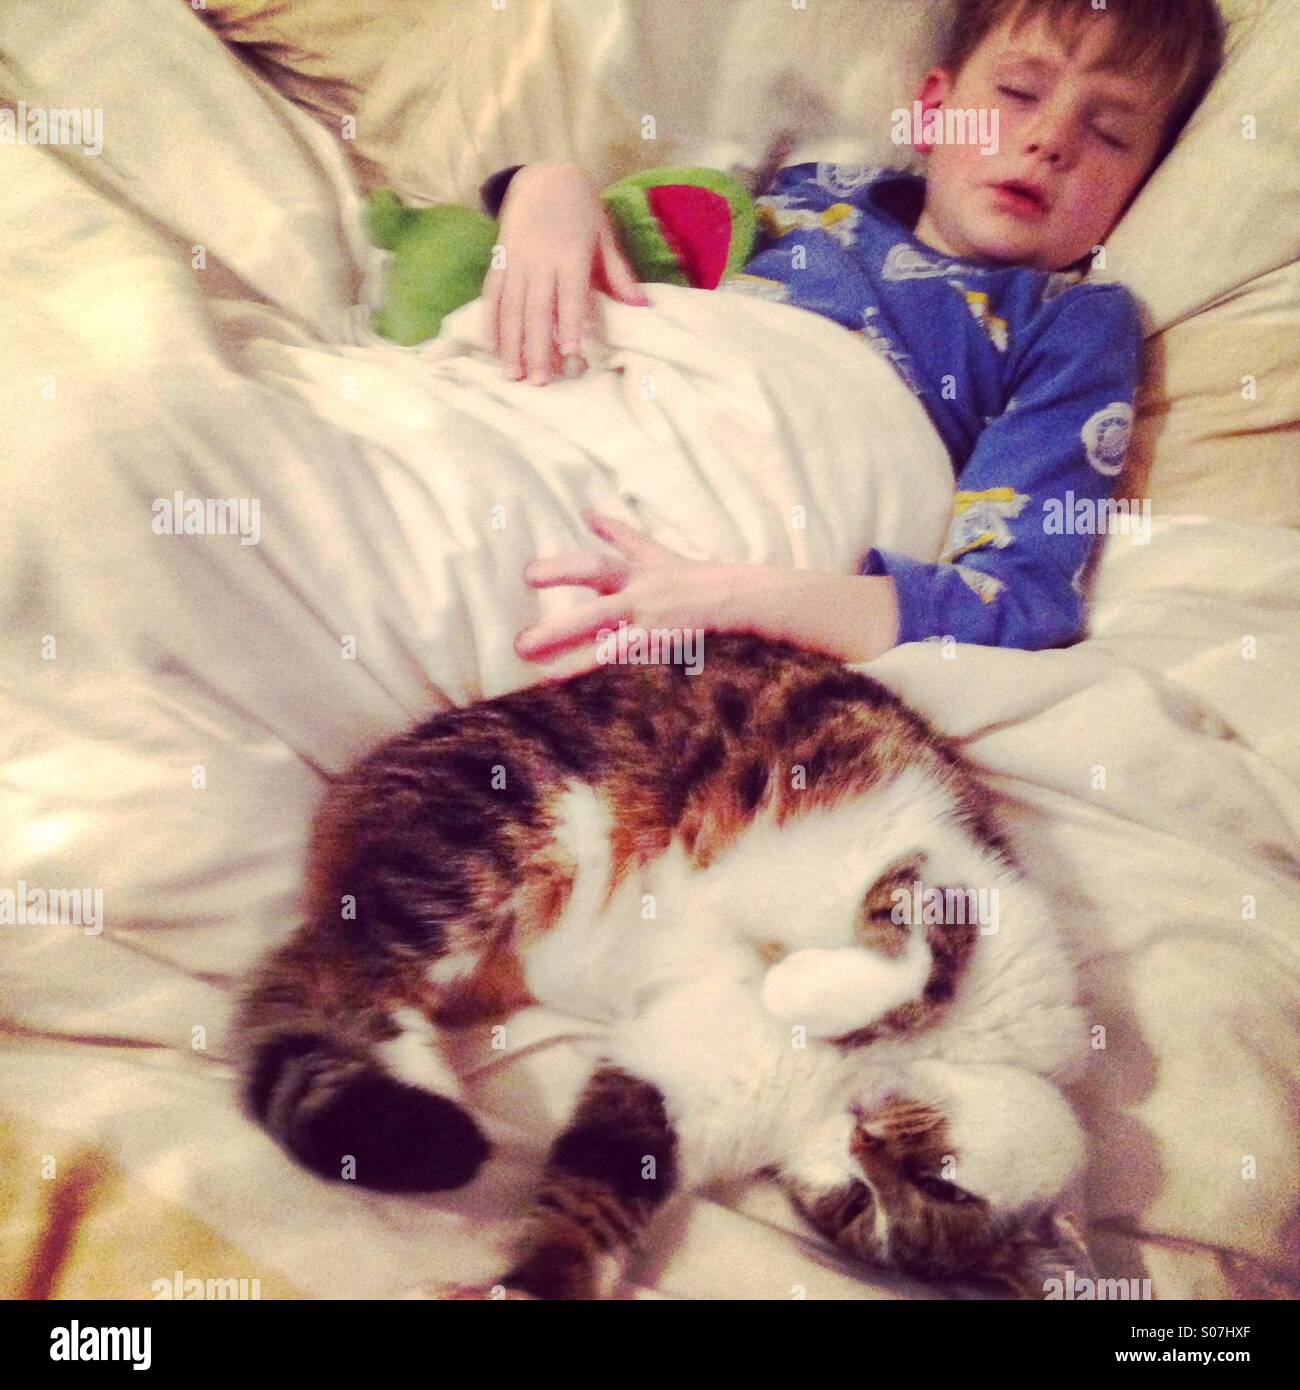 Sleeping boy and cat. Stock Photo